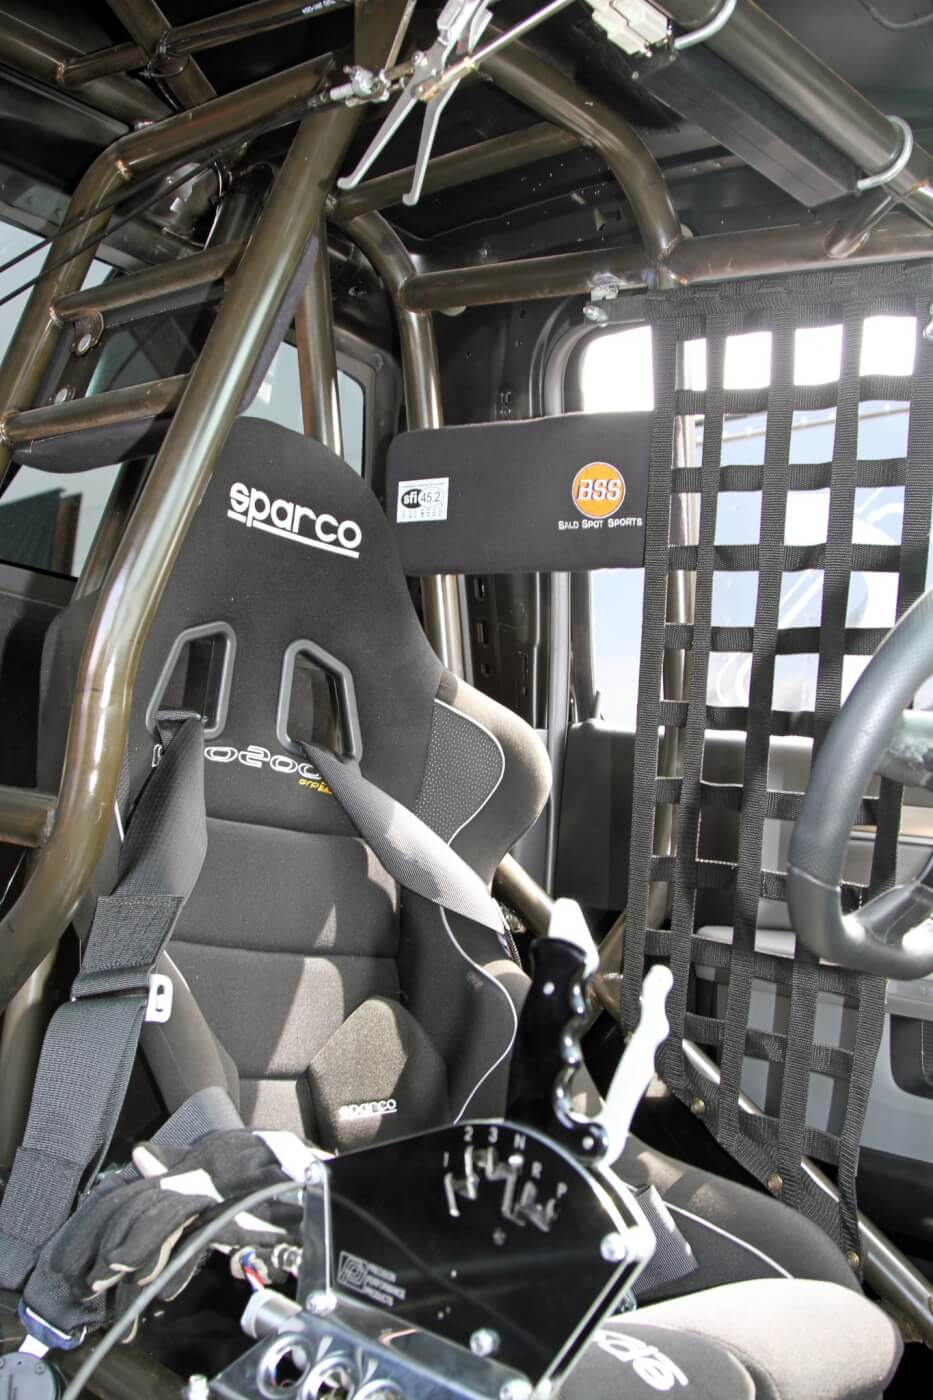 Tony Durhammer wrapped the roll cage around the Sparco Pro2000 race seat to provide Milliken with plenty of protection.